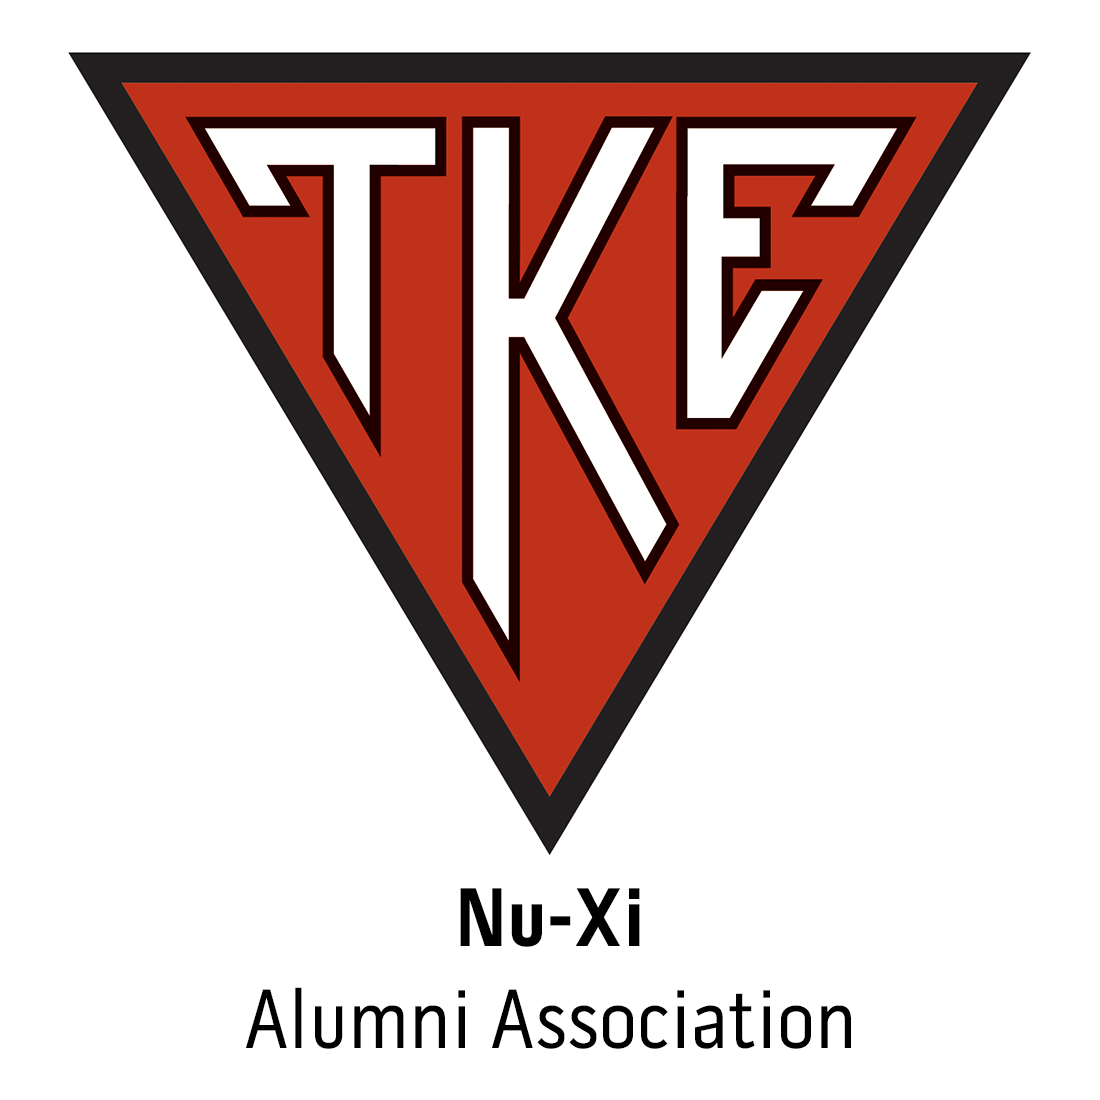 Nu-Xi Alumni Association at Stephen F. Austin State University